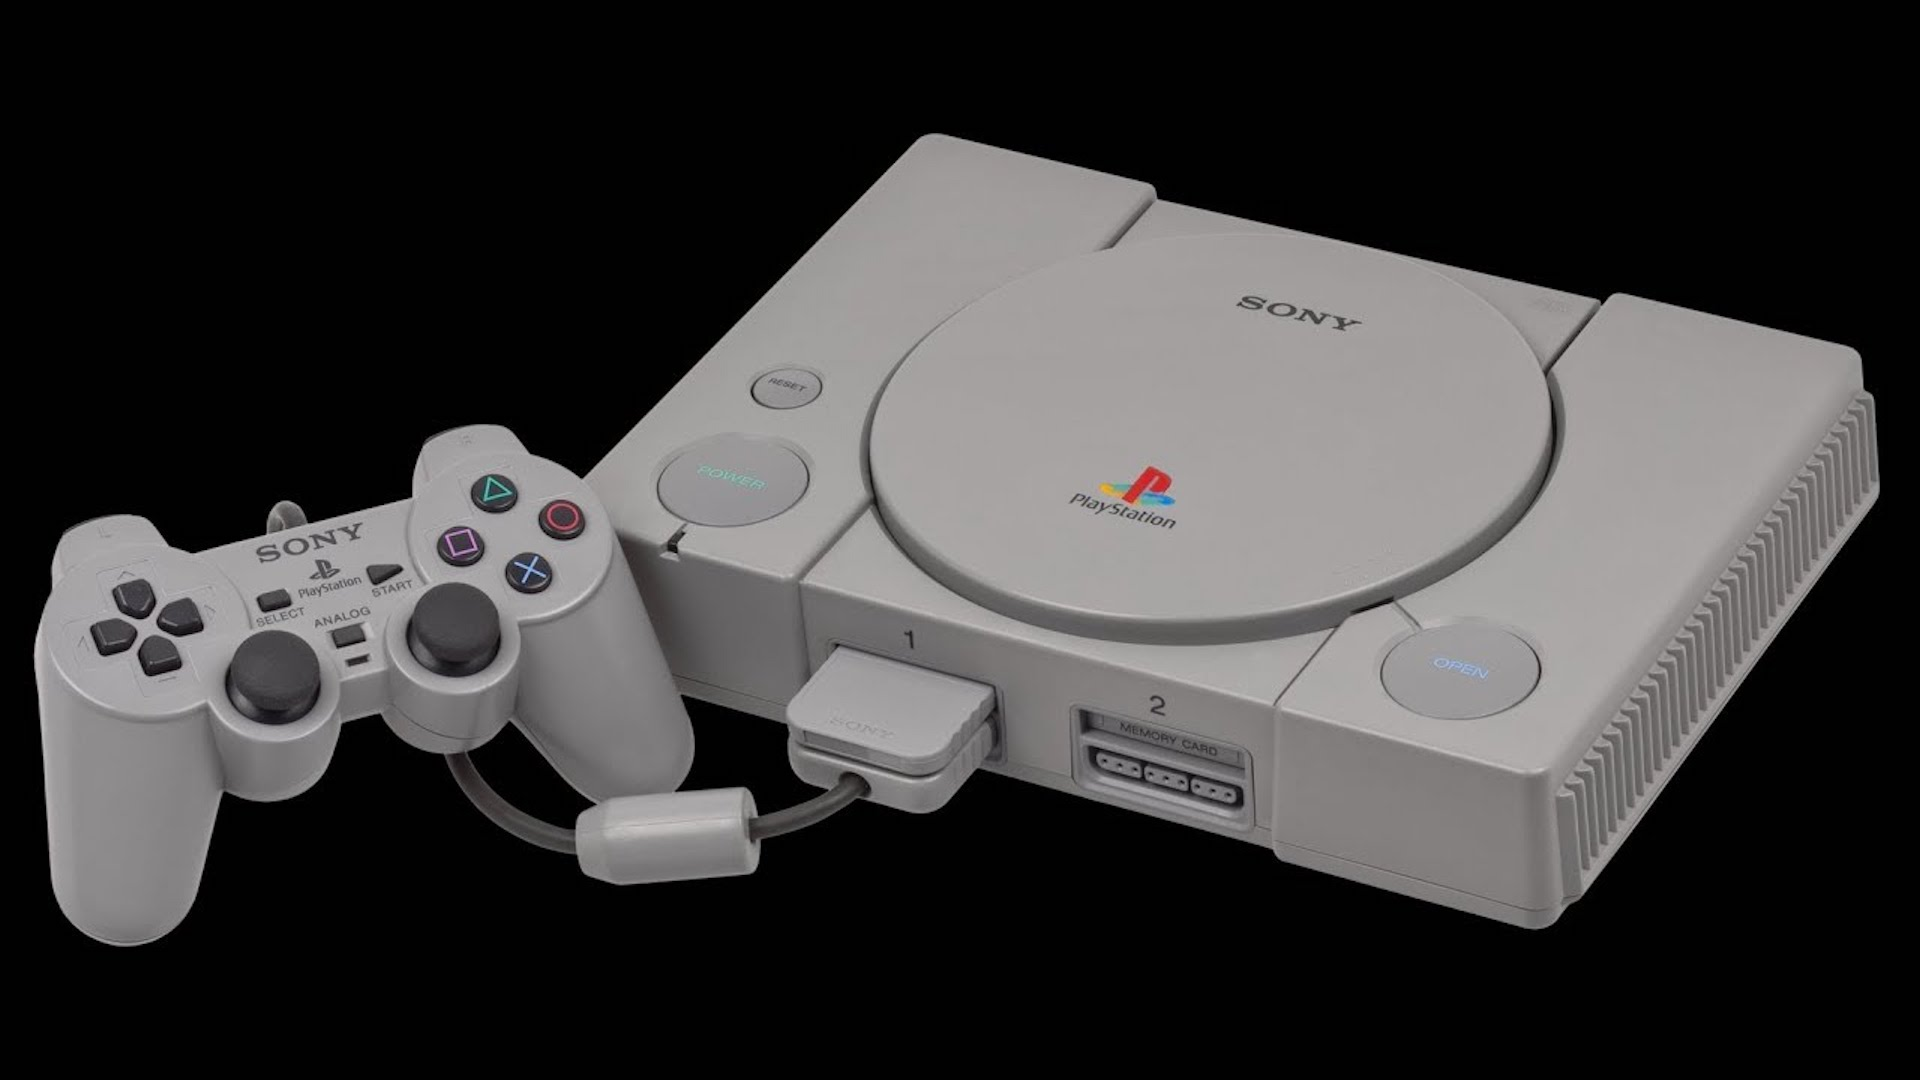 ps1 image